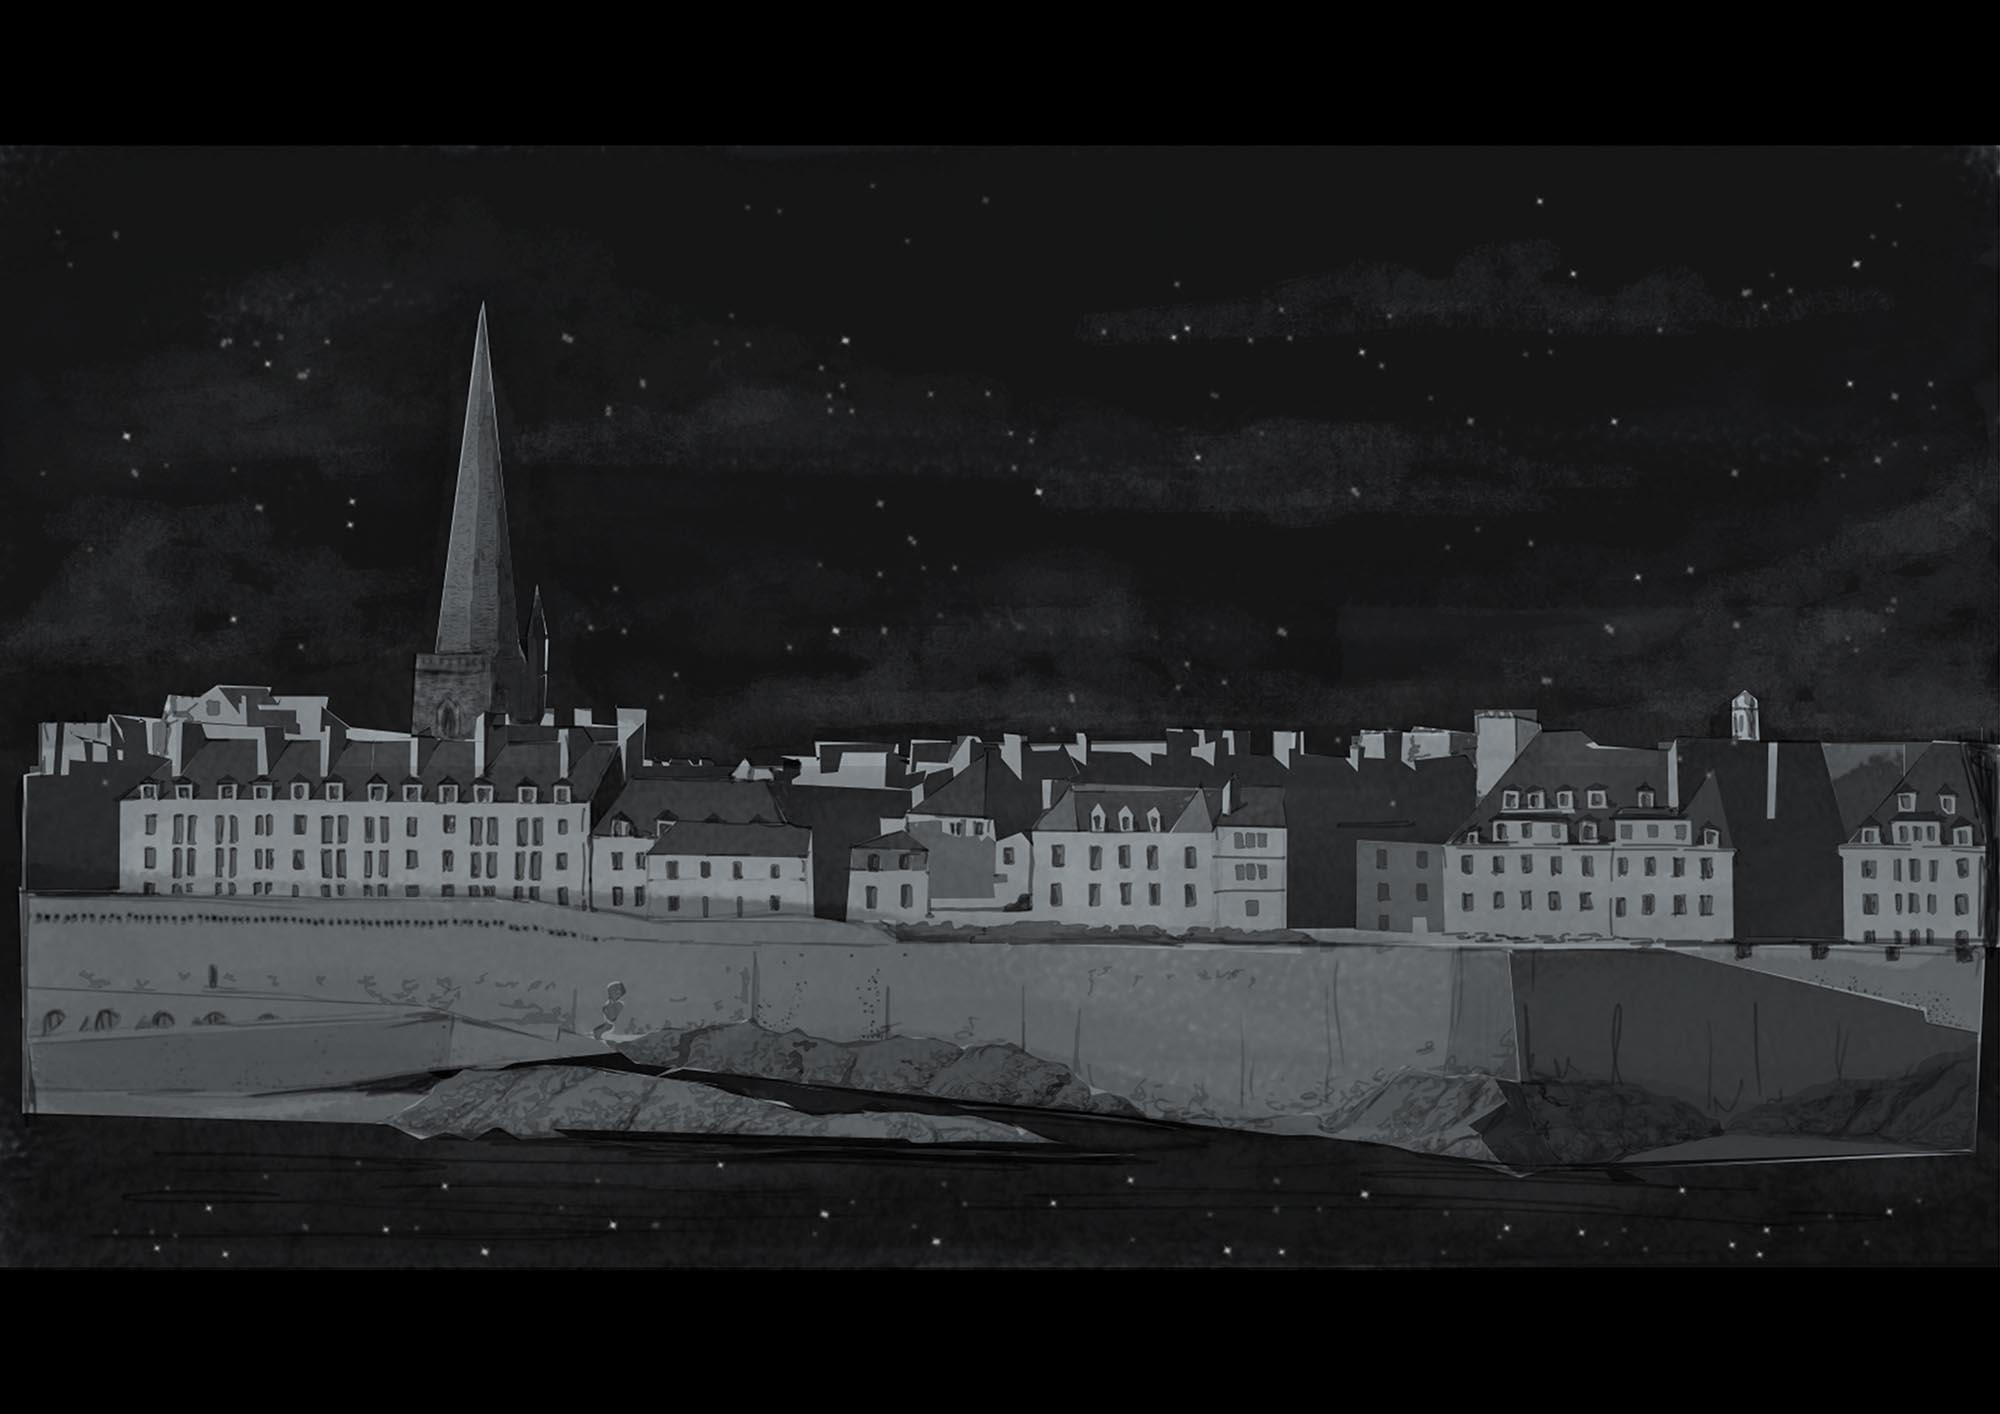 Digitally painted still of scene showing St. Malo taken from Avni's self-directed project, completed in her final year, based on the book All the Light We Cannot See by Anthony Doerr.